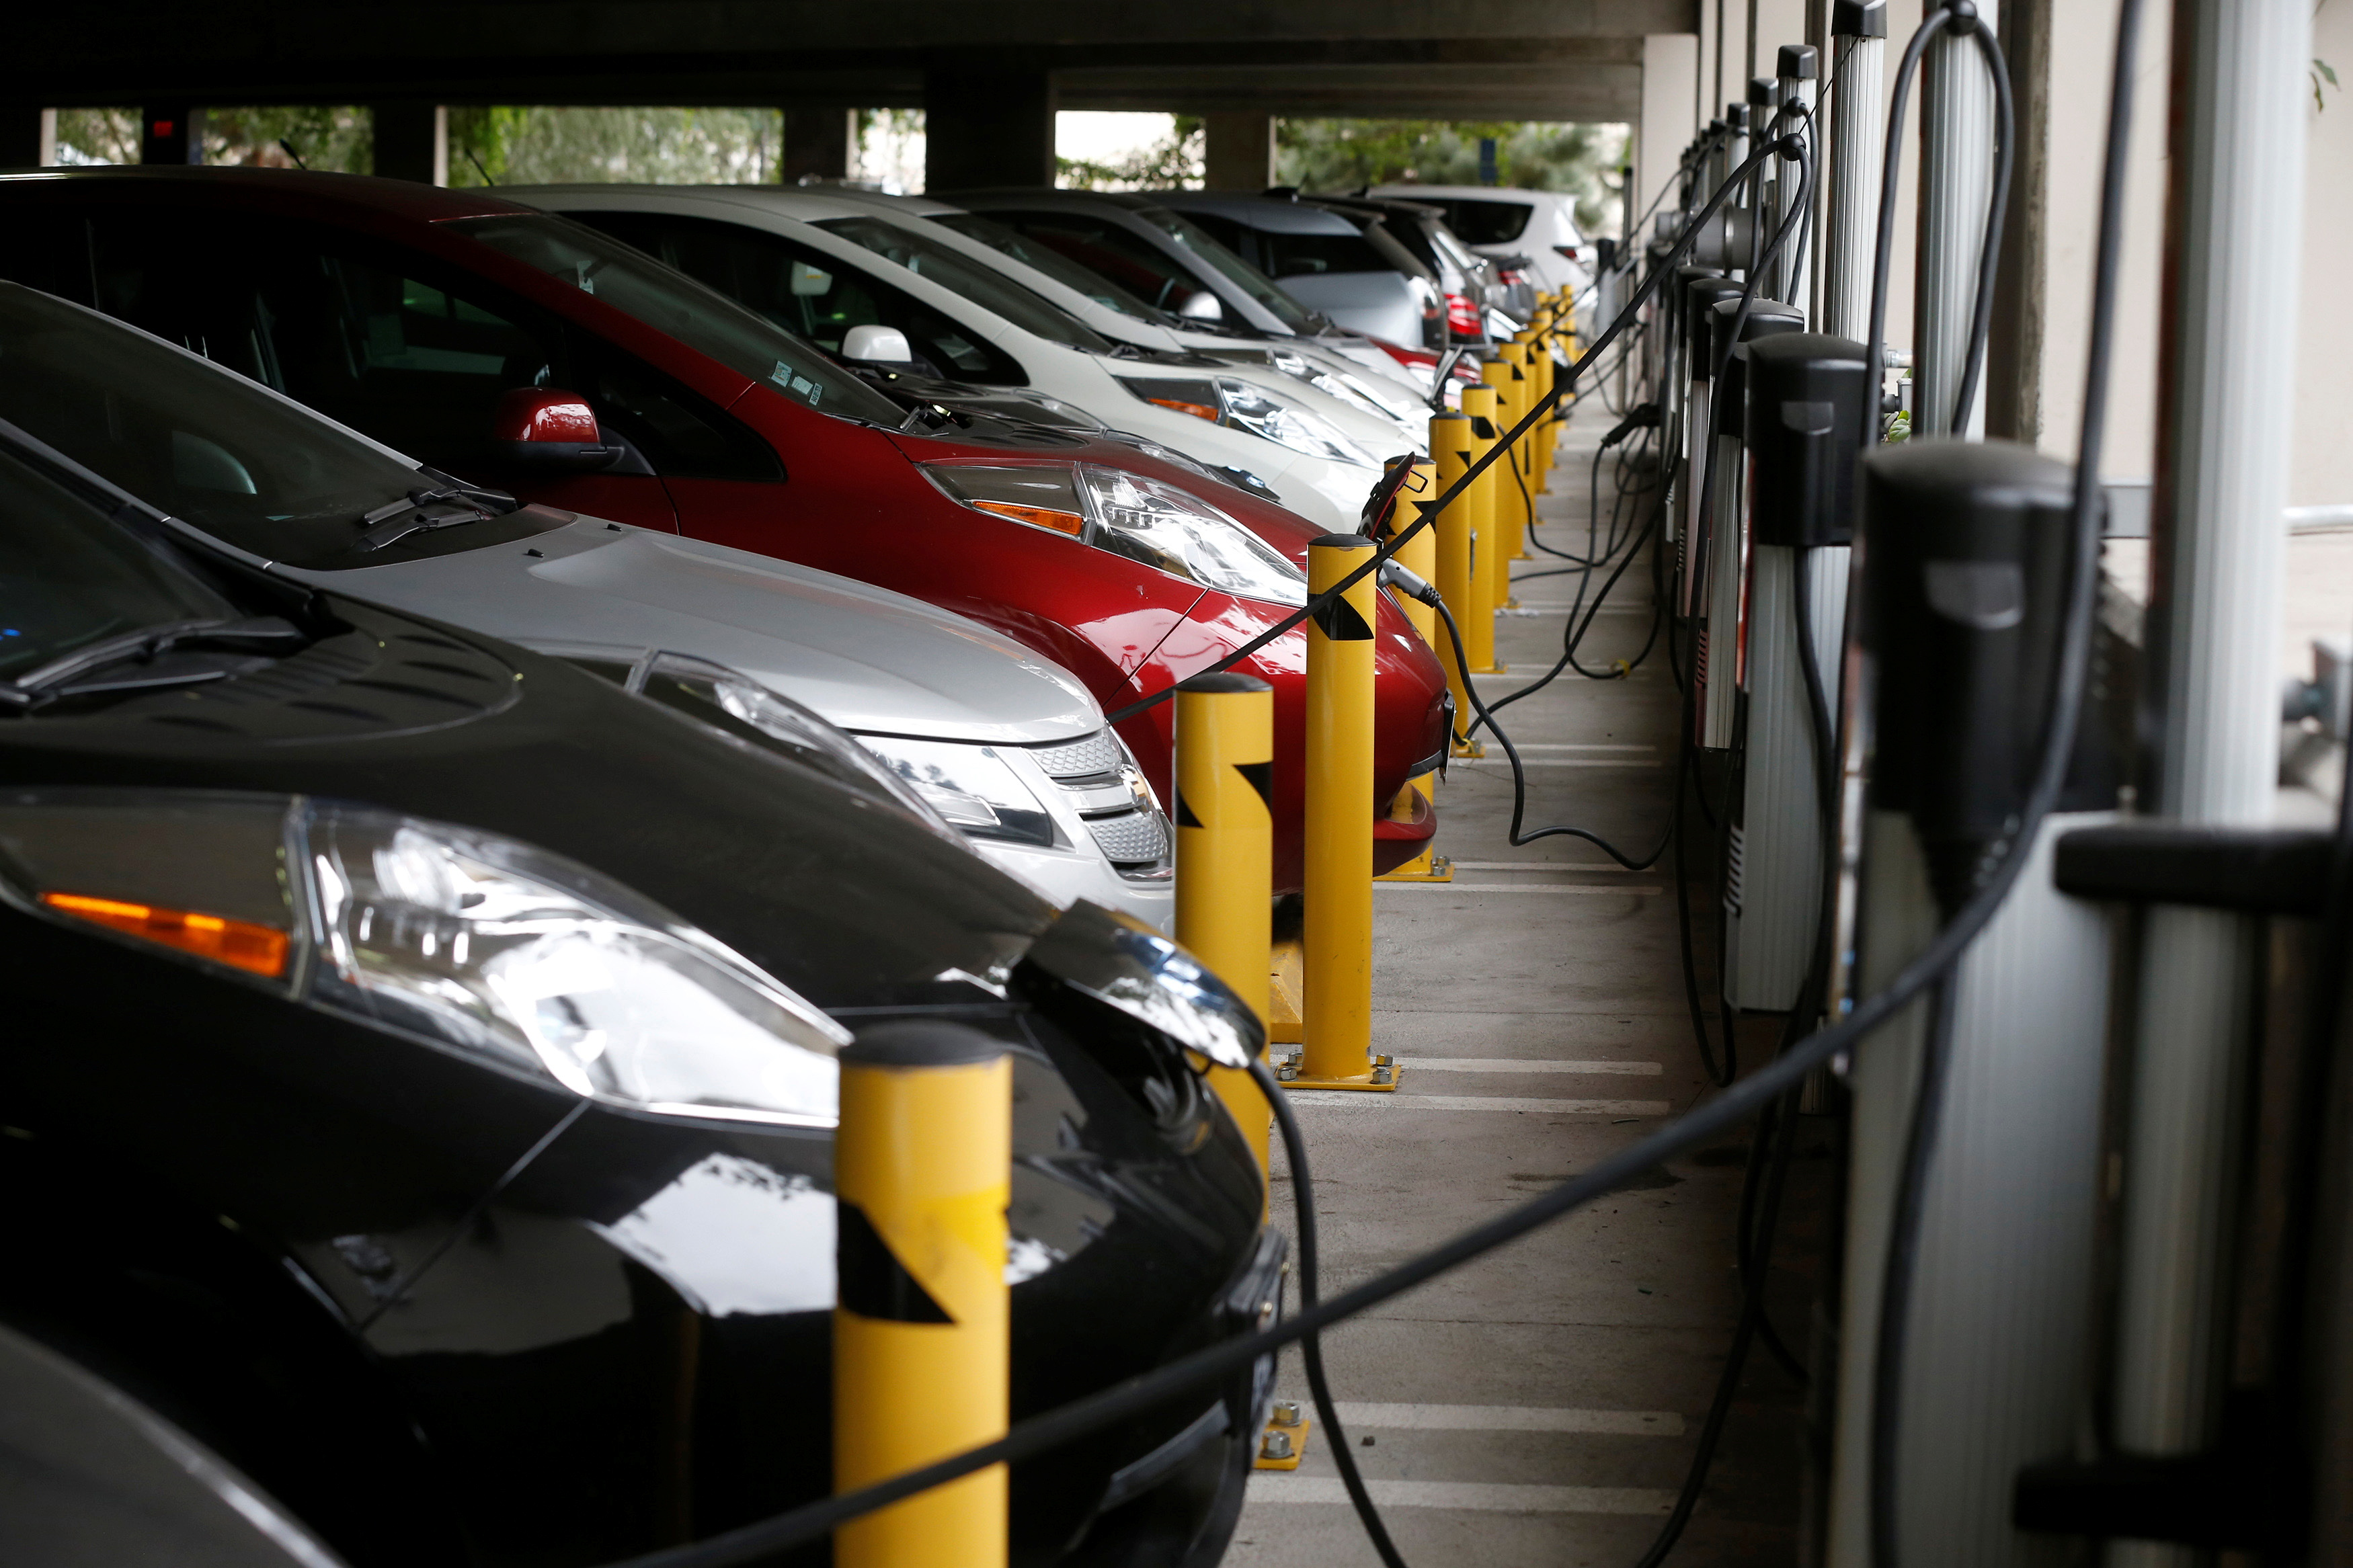 Electric cars sit charging in a parking garage at the University of California, Irvine January 26, 2015. REUTERS/Lucy Nicholson